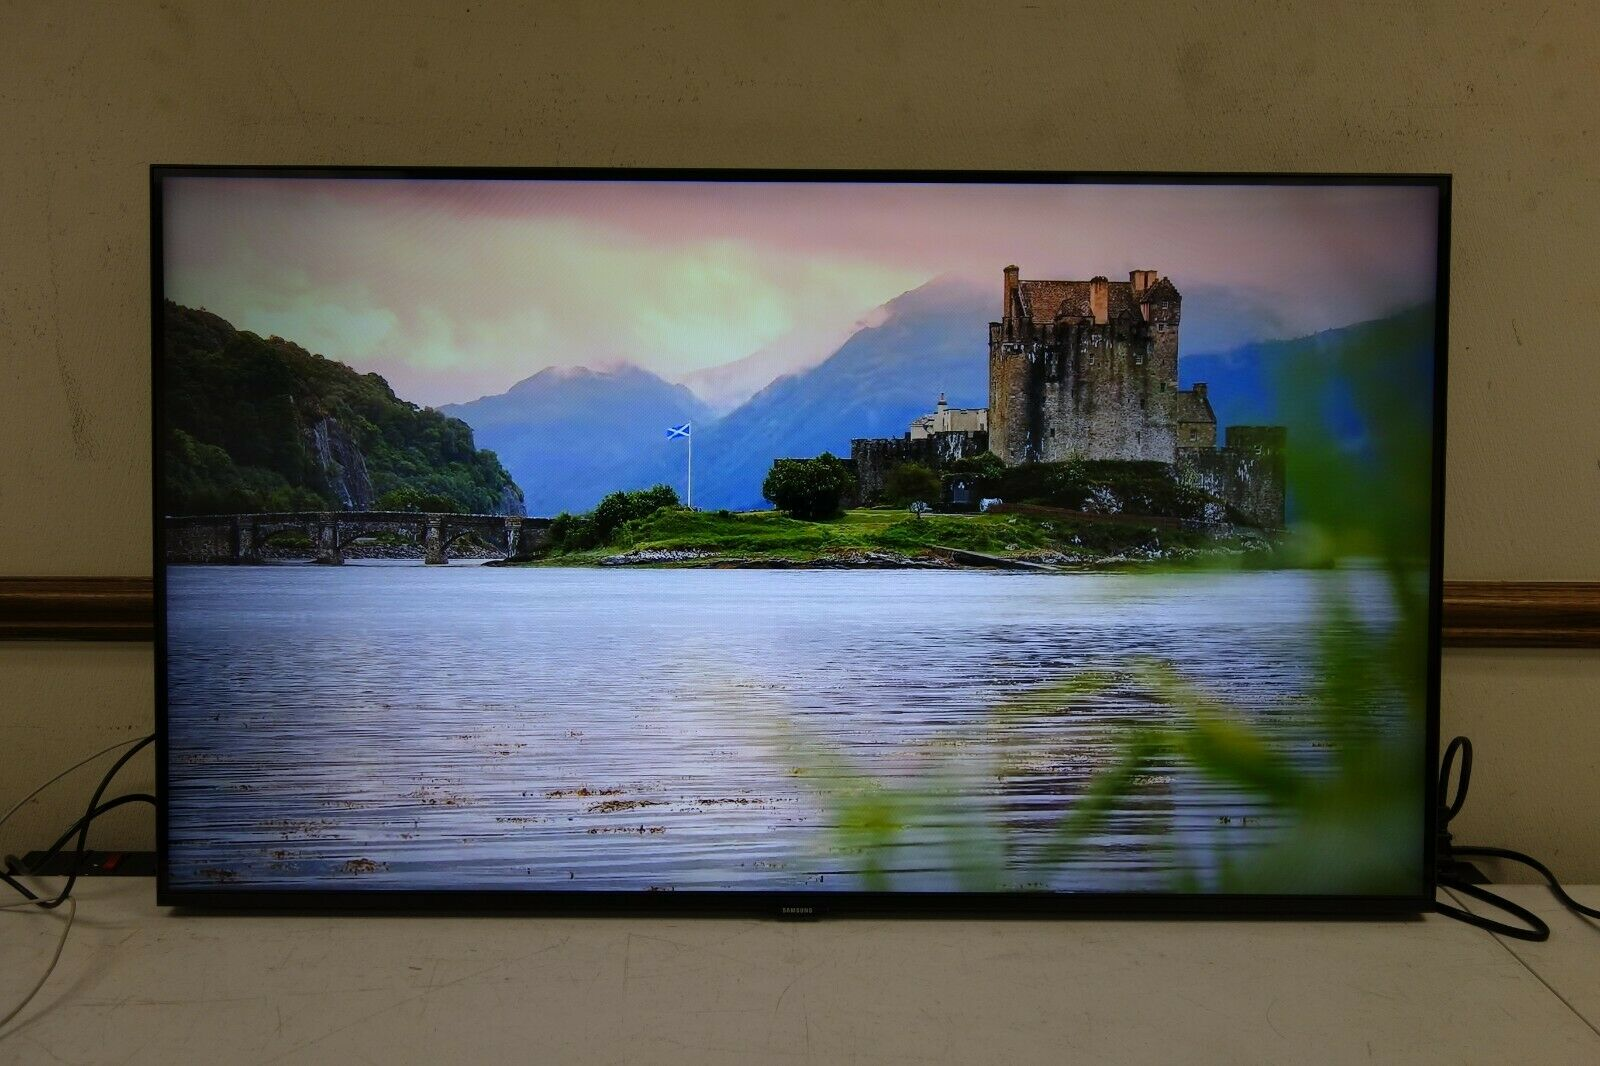 Samsung - 43 Class 8 Series LED 4K UHD Smart Tizen TV(AR11). Available Now for 279.99